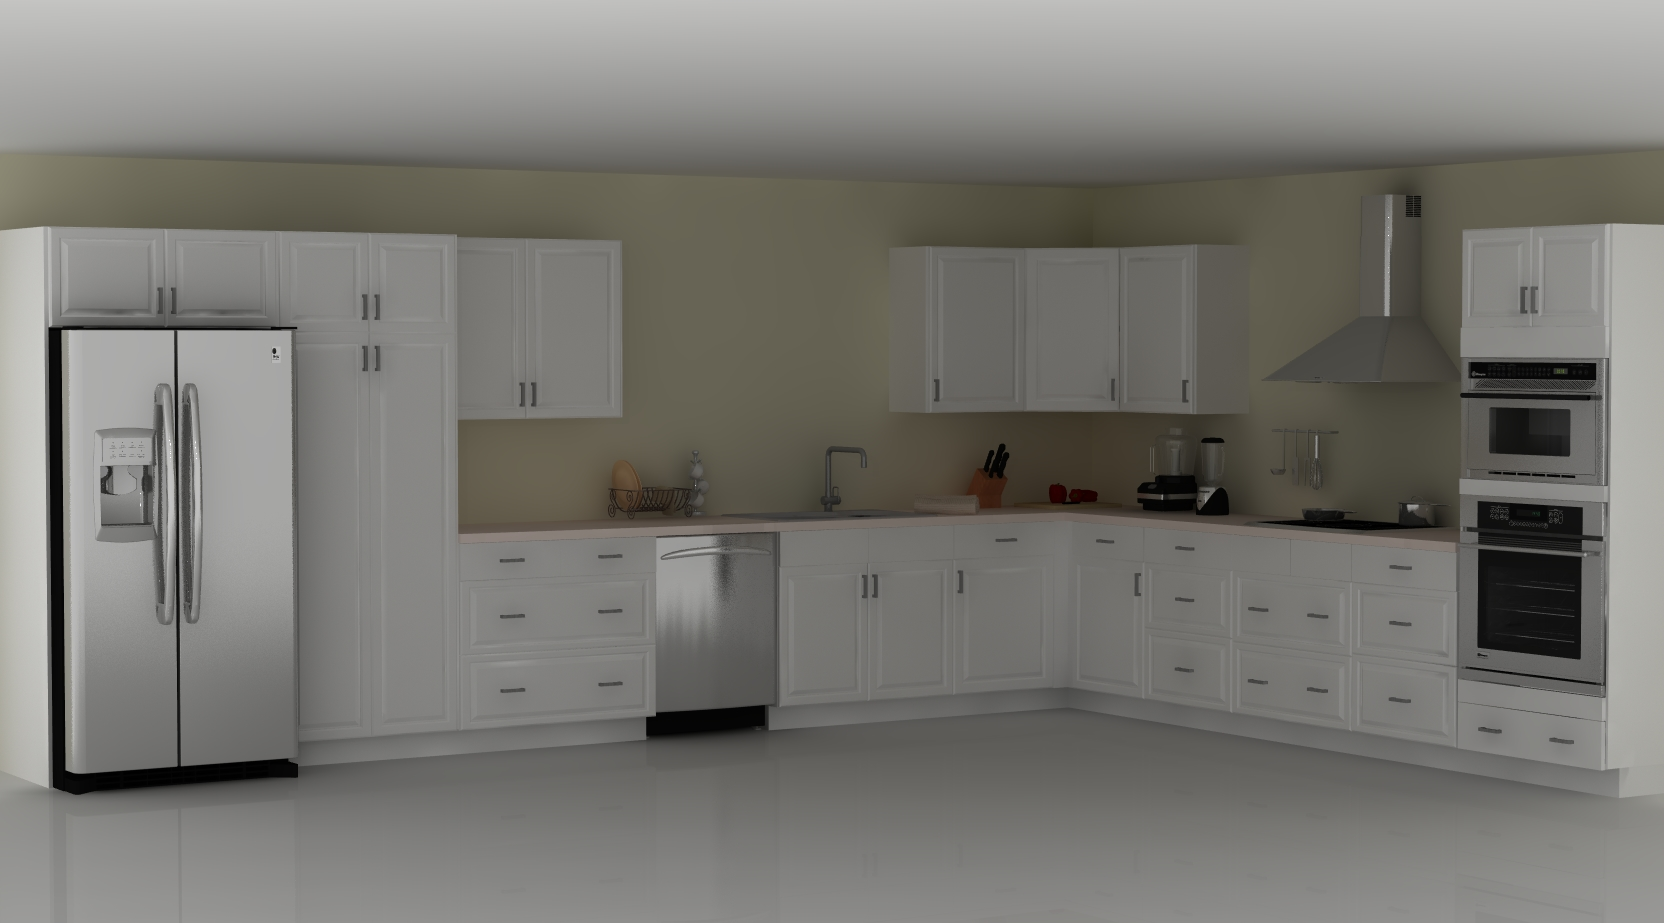 Ikea kitchen designer tips pros and cons of an l shaped L shaped room kitchen designs